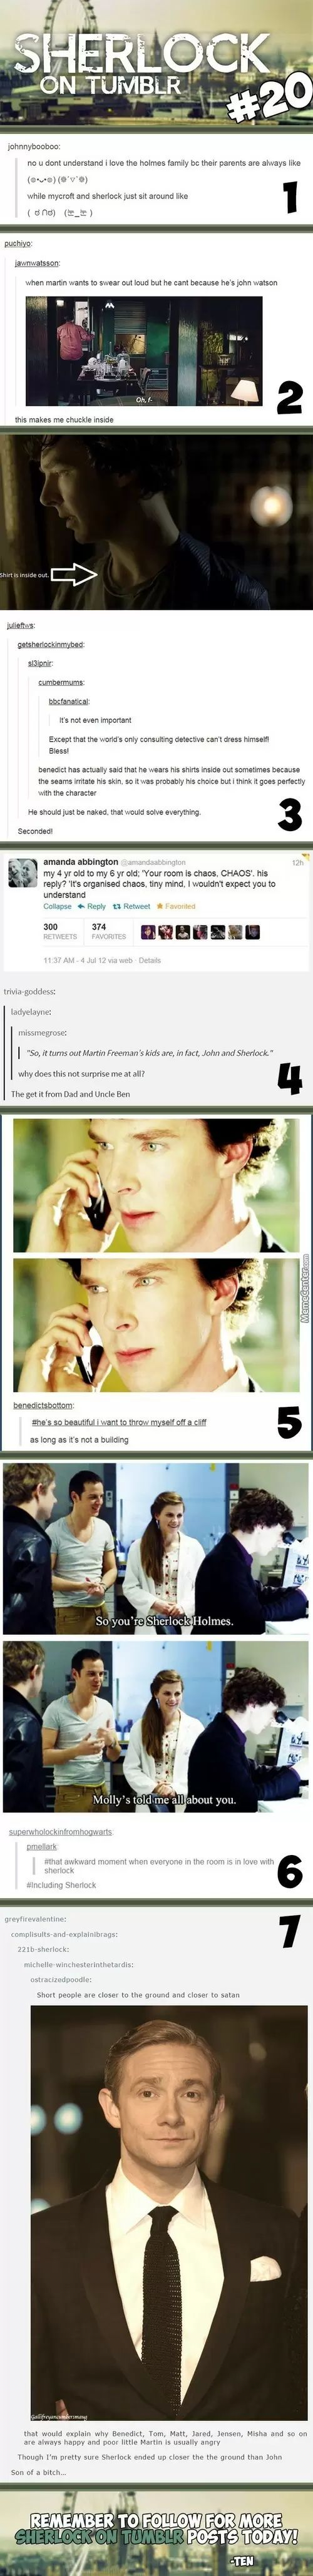 Sherlock On Tumblr #20